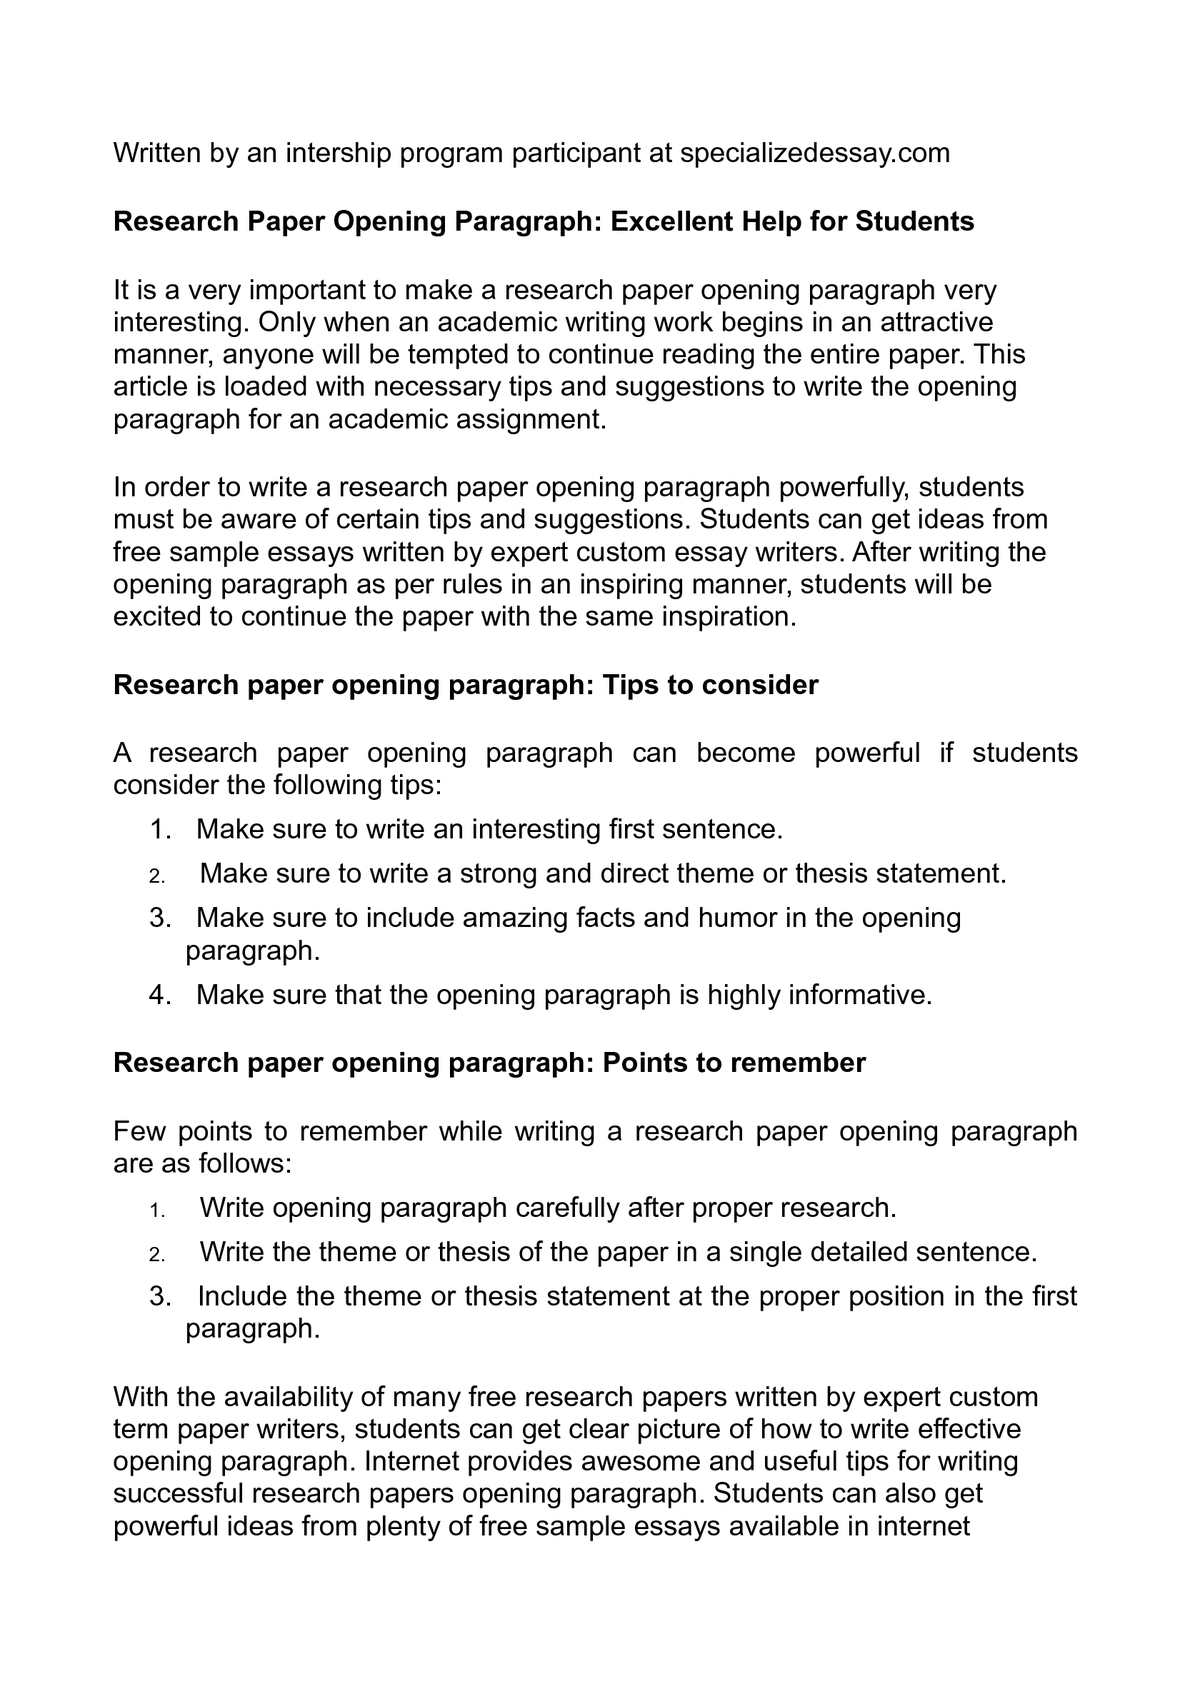 004 P1 Research Paper Good Introduction Sentences Rare For Paragraph A How To Write Conclusion Introductory Full